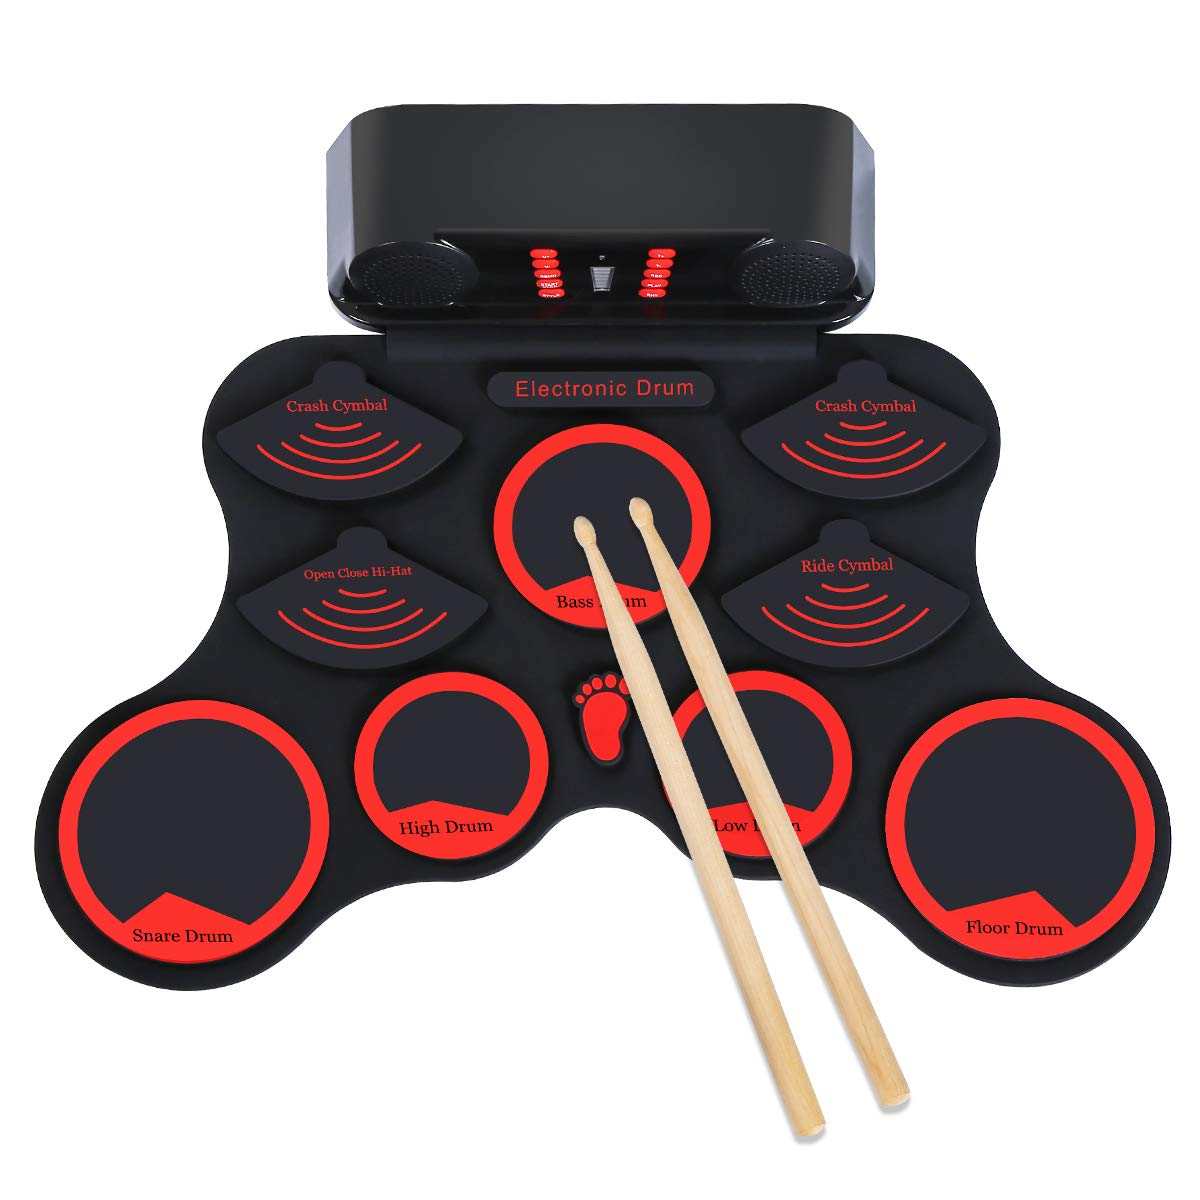 Elejolie Electronic Drum Set Roll Up Drum Practice Kit Portable Rechargeable Drum Kit with Headphone Jack Built-in Dual Speaker Drum Pedals Drum Sticks Children Beginners Gift for Kids